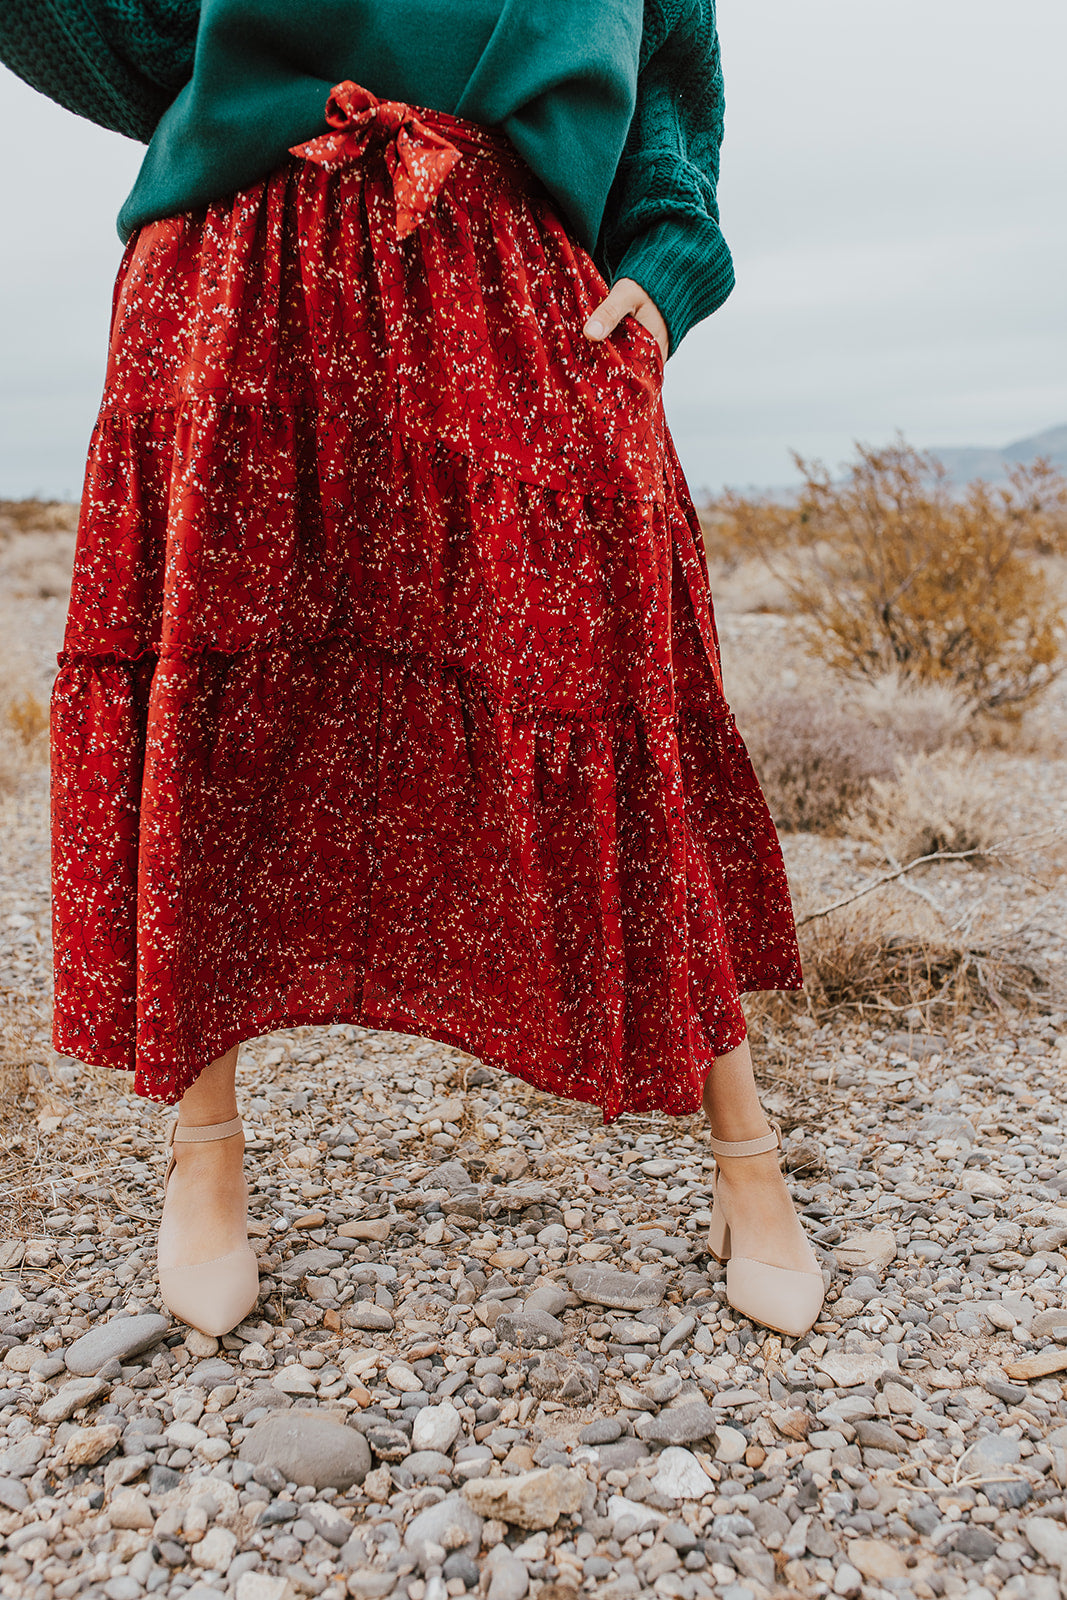 THE TRISTAN TIERED MIDI SKIRT IN RED FLORAL